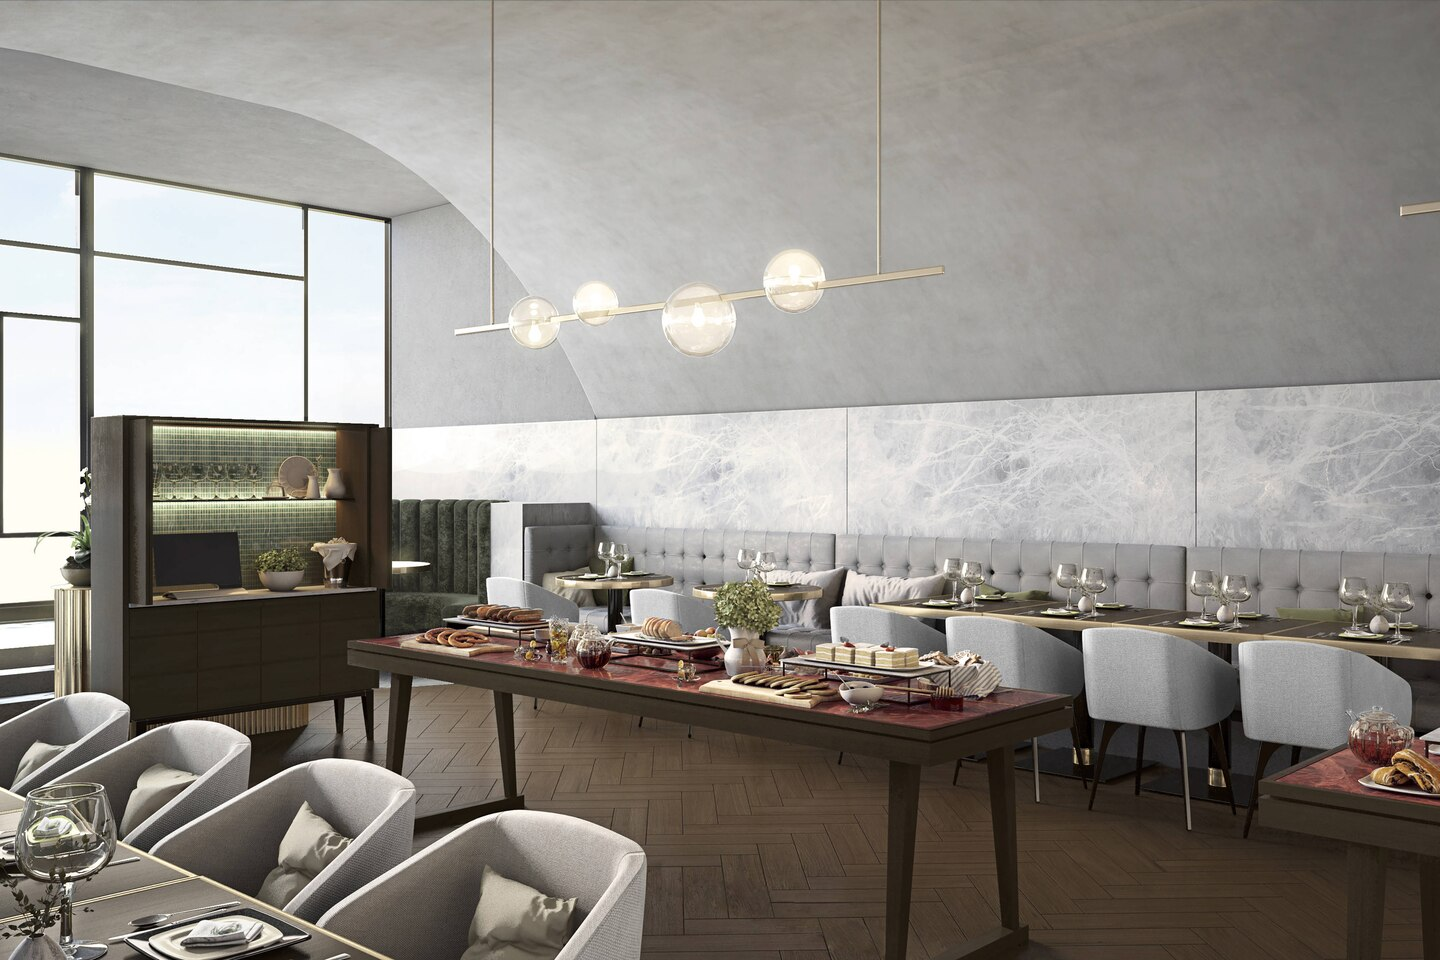 Melbourne Marriott Hotel Docklands Set To Wow With Five Star Dining